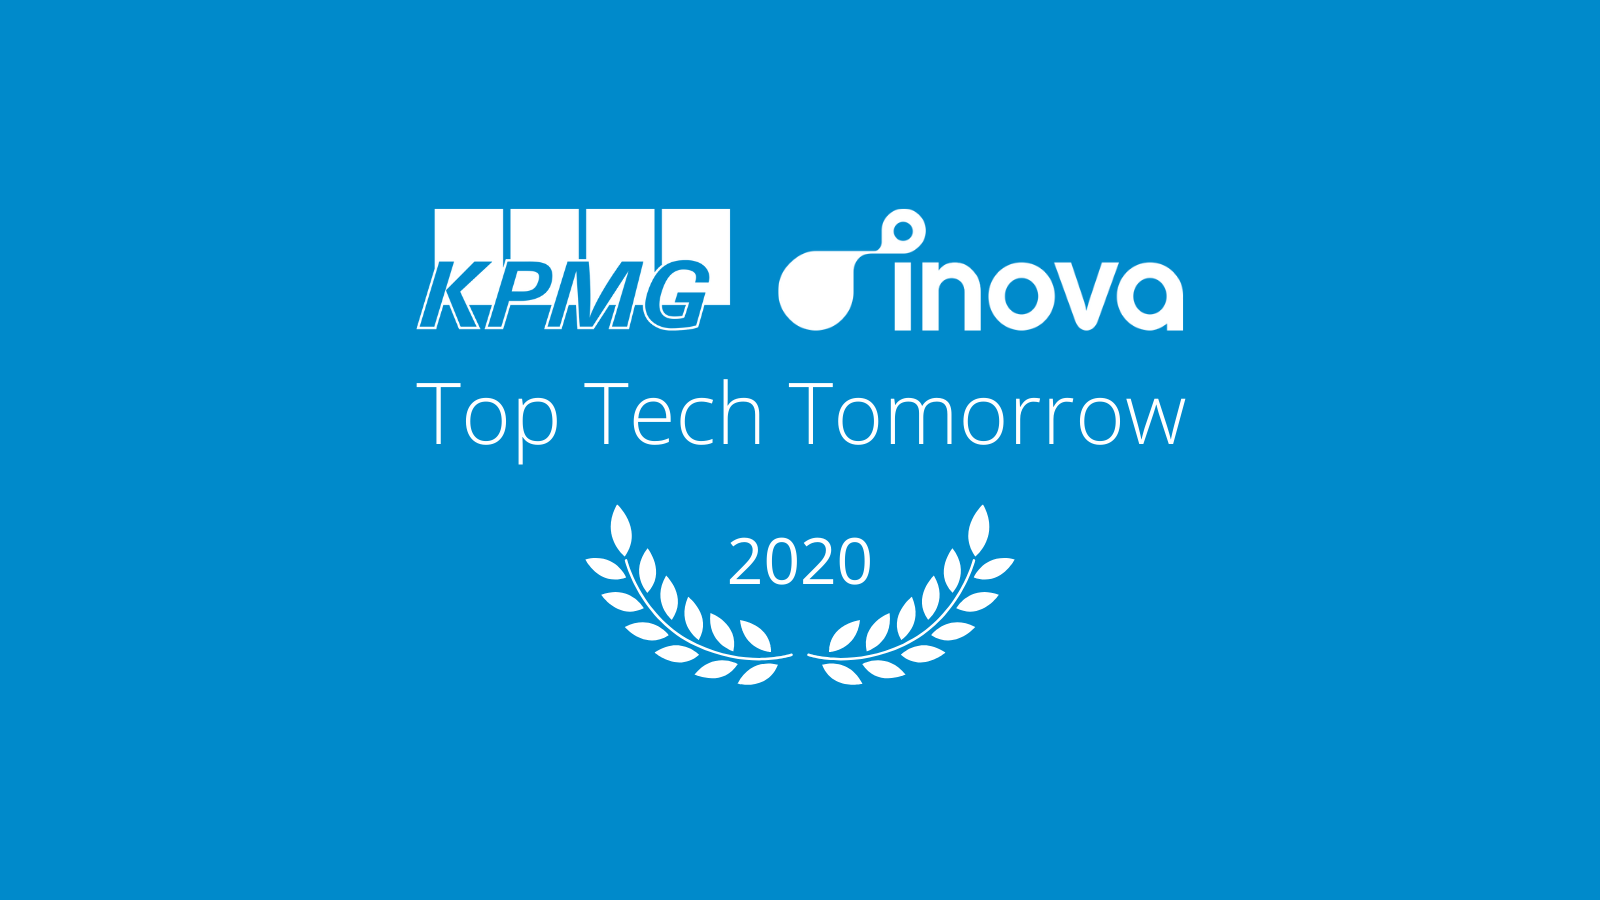 Inova is a KPMG Top Tech Tomorrow Laureate